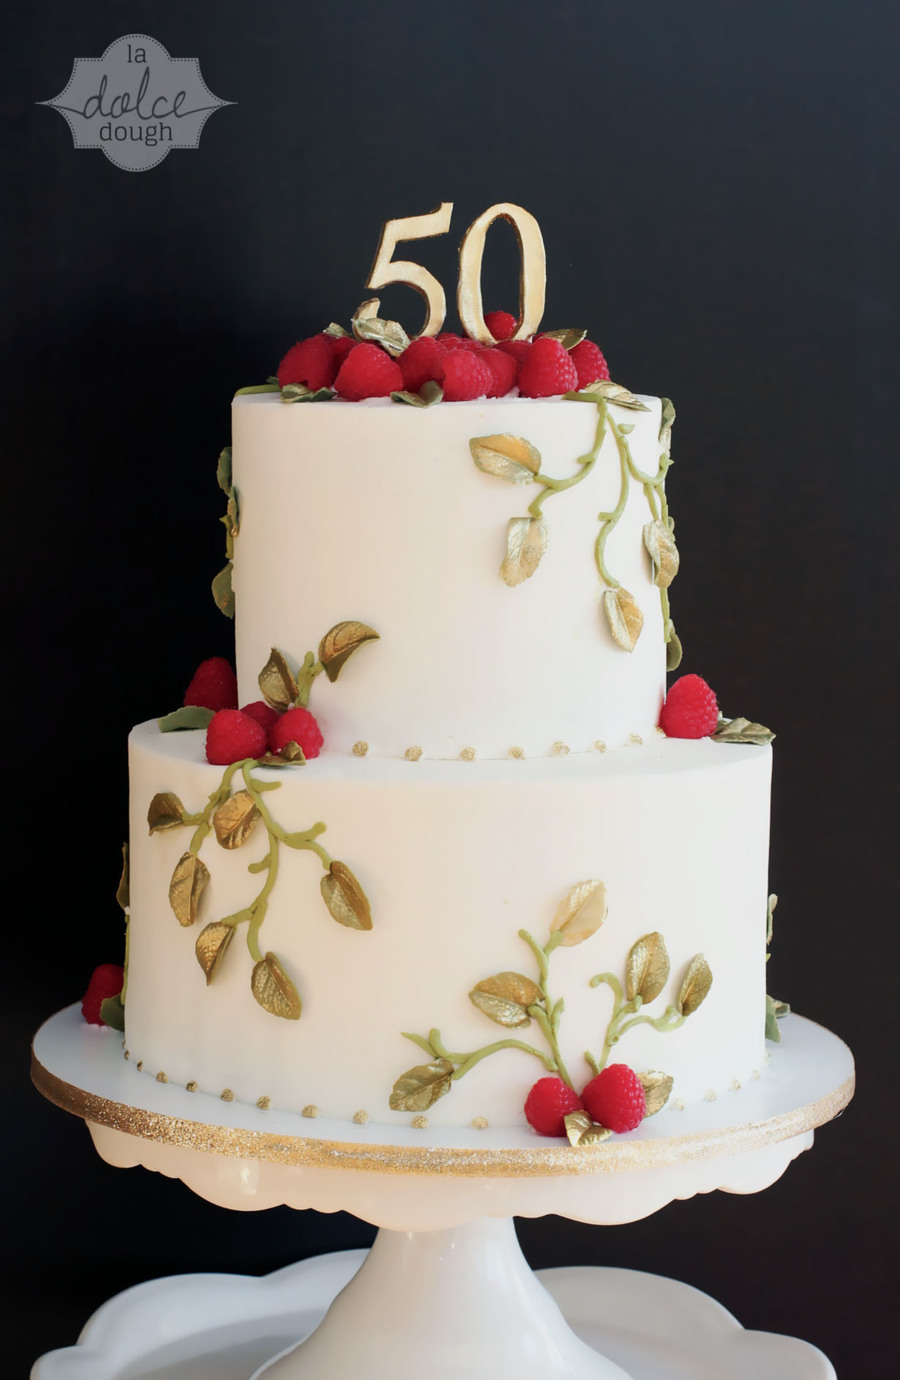 Gold Leaves Cake Decoration : Gold Leaf Raspberry Vine Anniversary Cake - CakeCentral.com